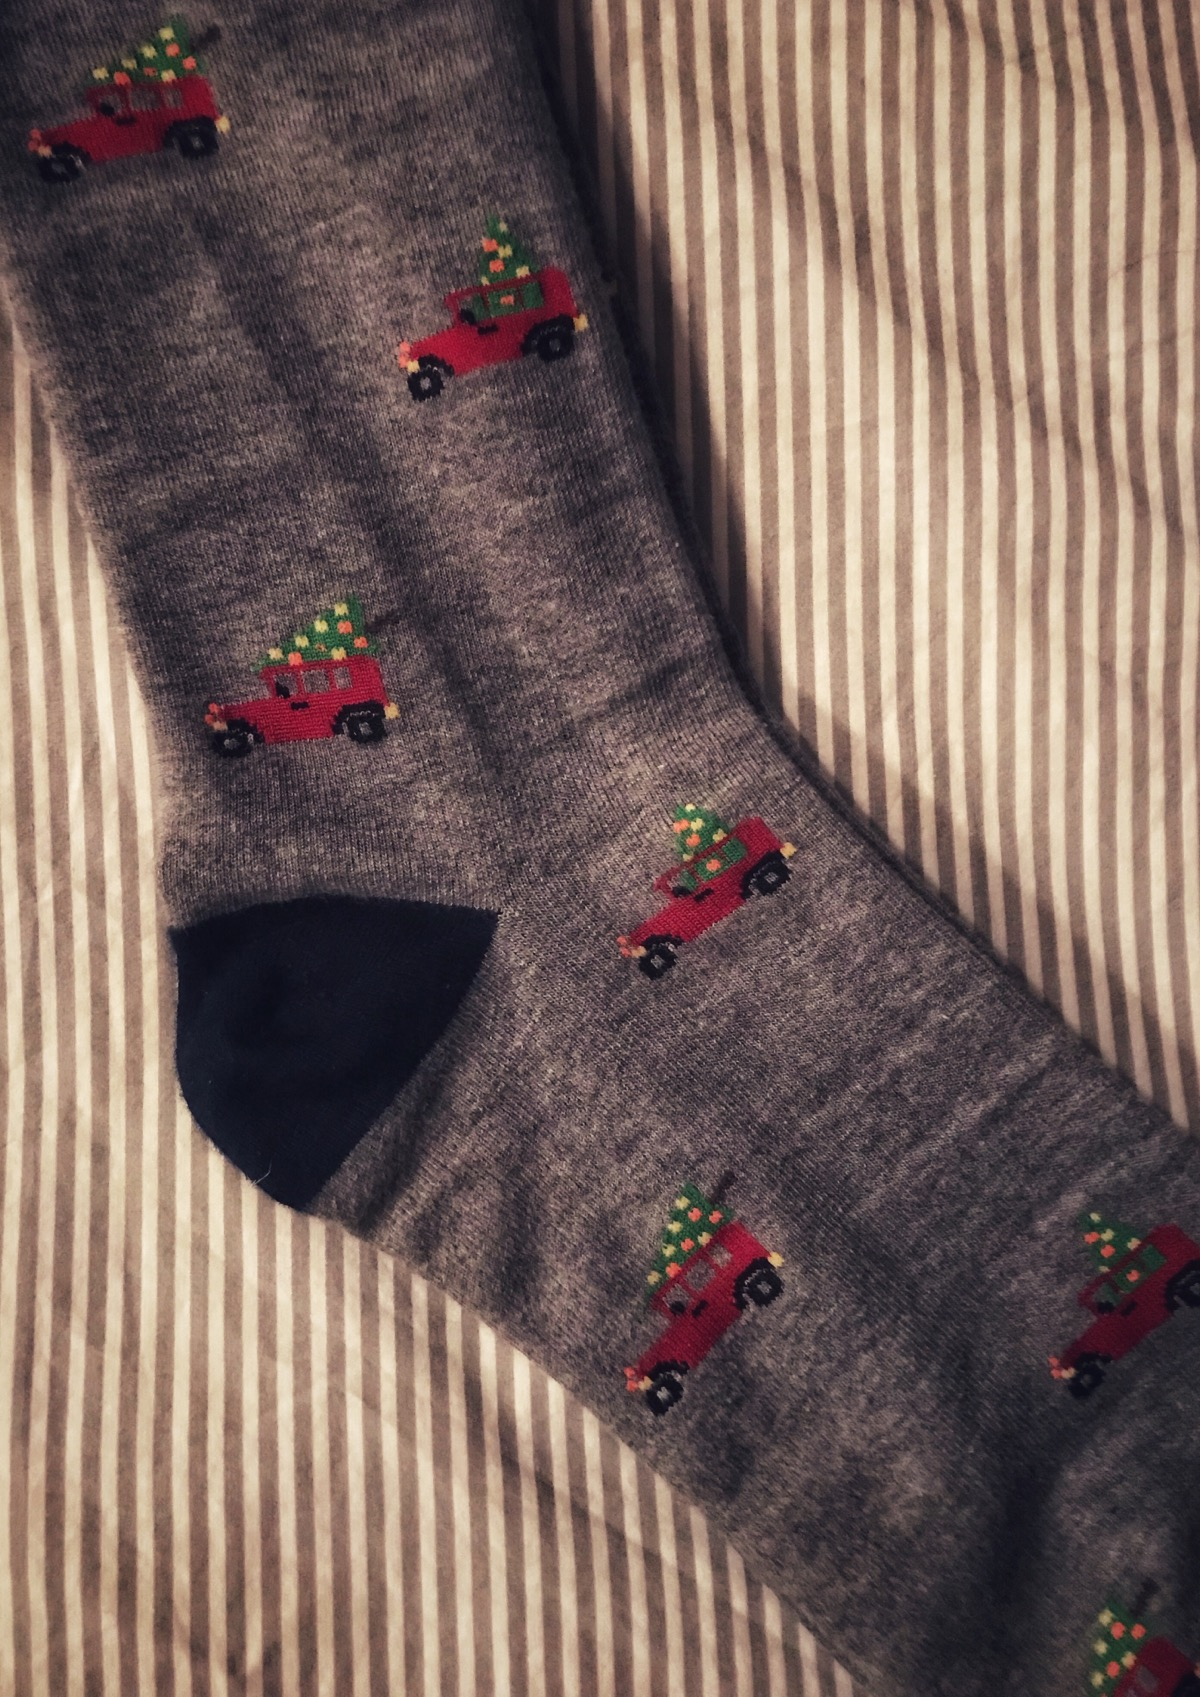 Socks with Christmas trees on them